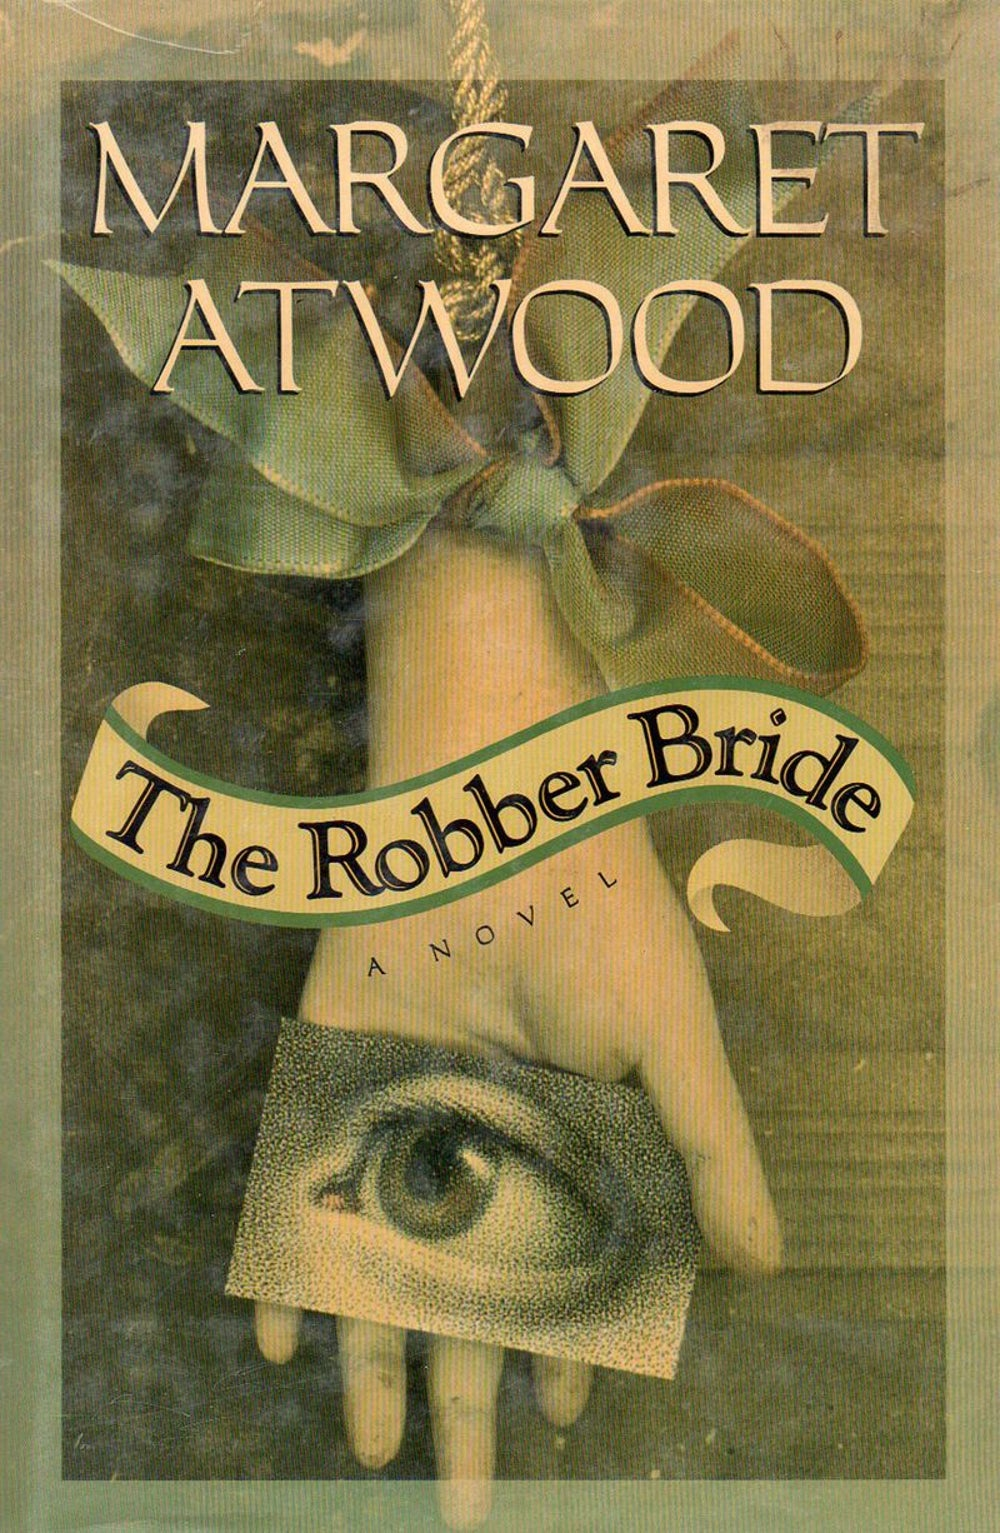 Special Projects Director Andrea Huspeni -- 'The Robber Bride' by Margaret Atwood